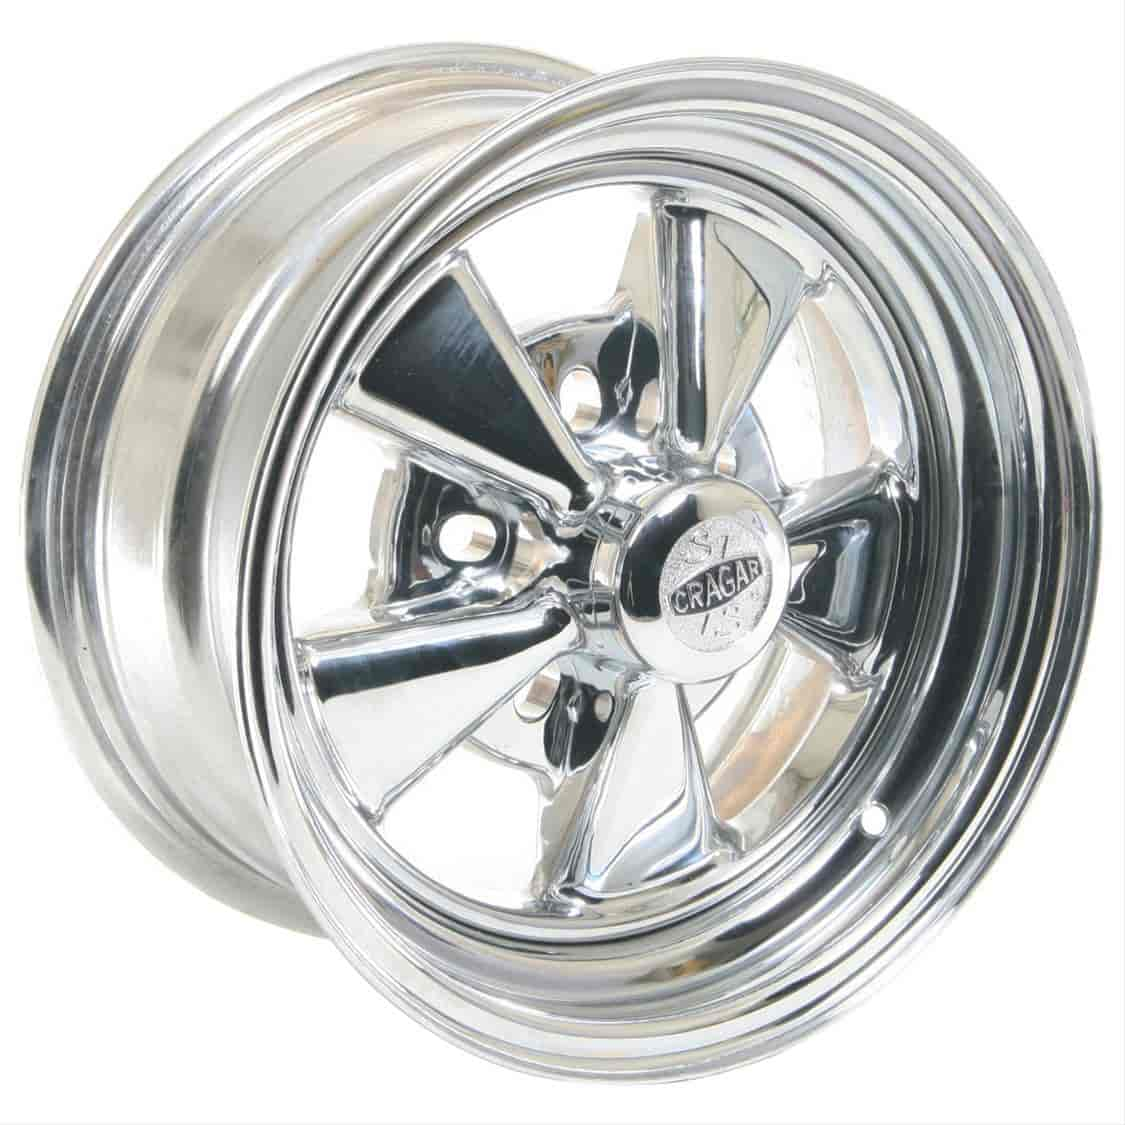 Cragar 61017 - Cragar 08/61 Series S/S Super Sport Wheels